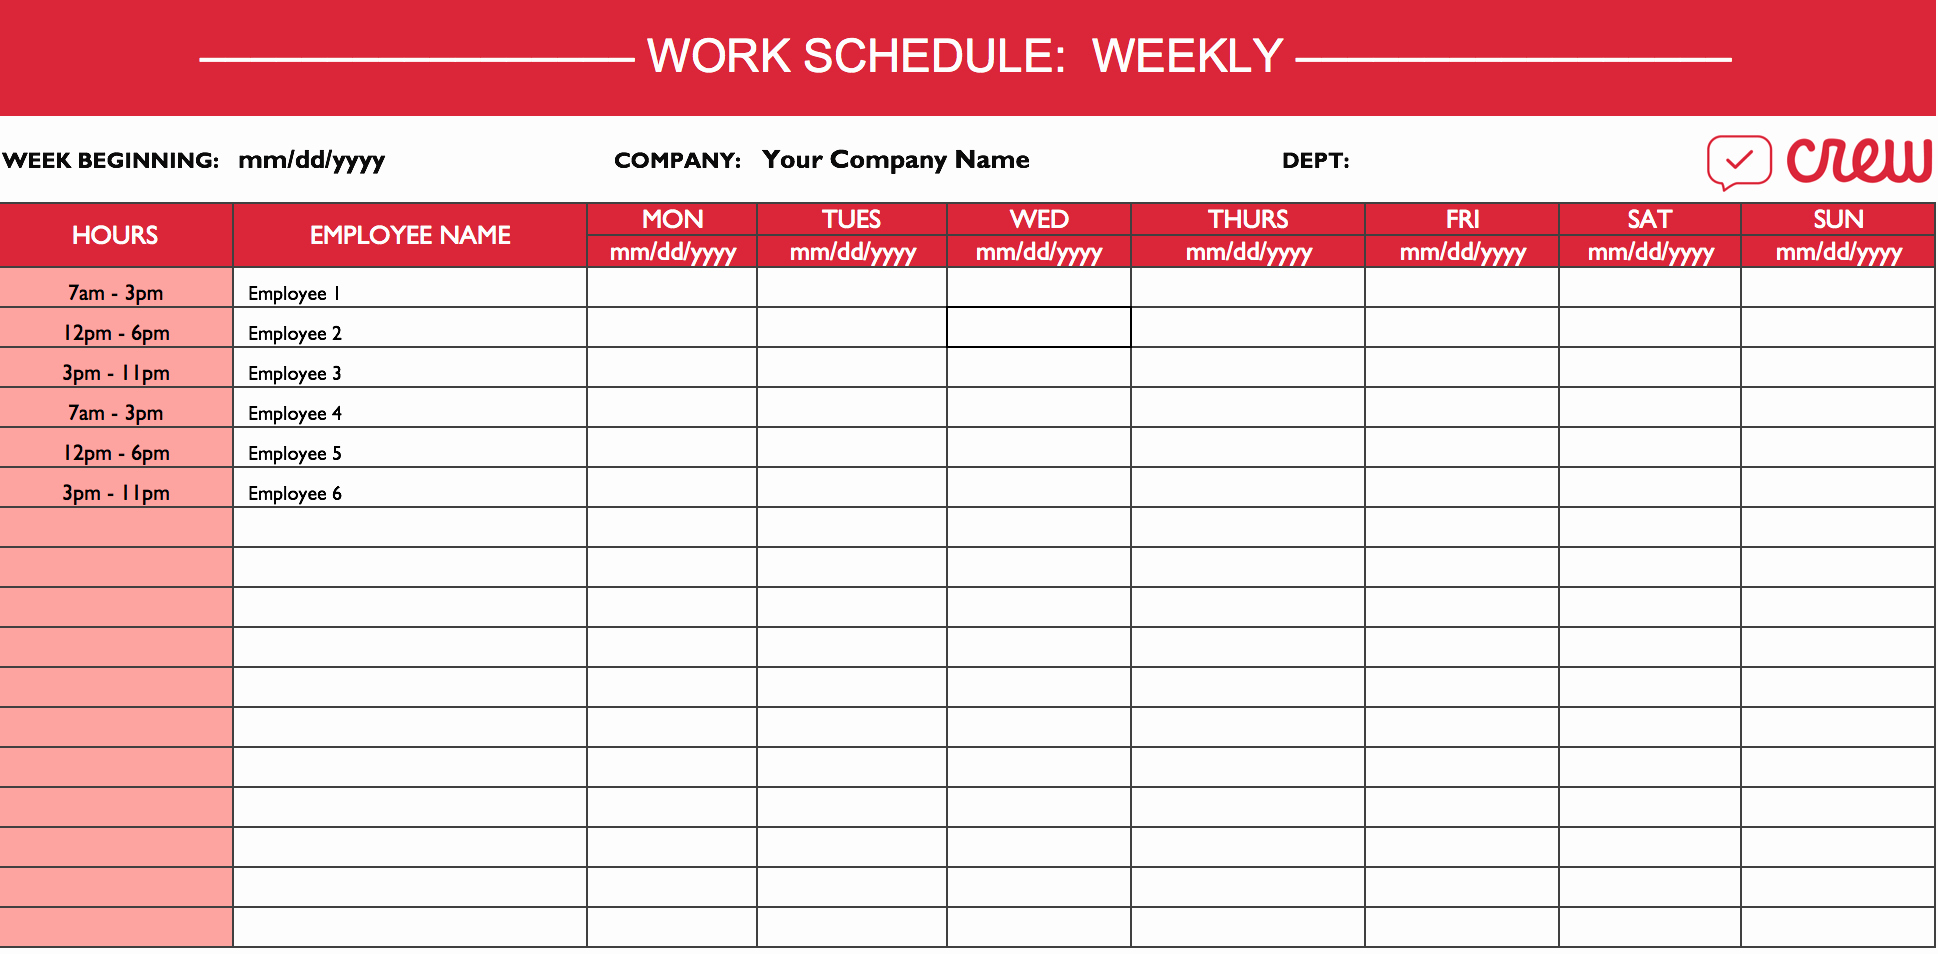 Employee Shift Schedule Template Beautiful Weekly Work Schedule Template I Crew